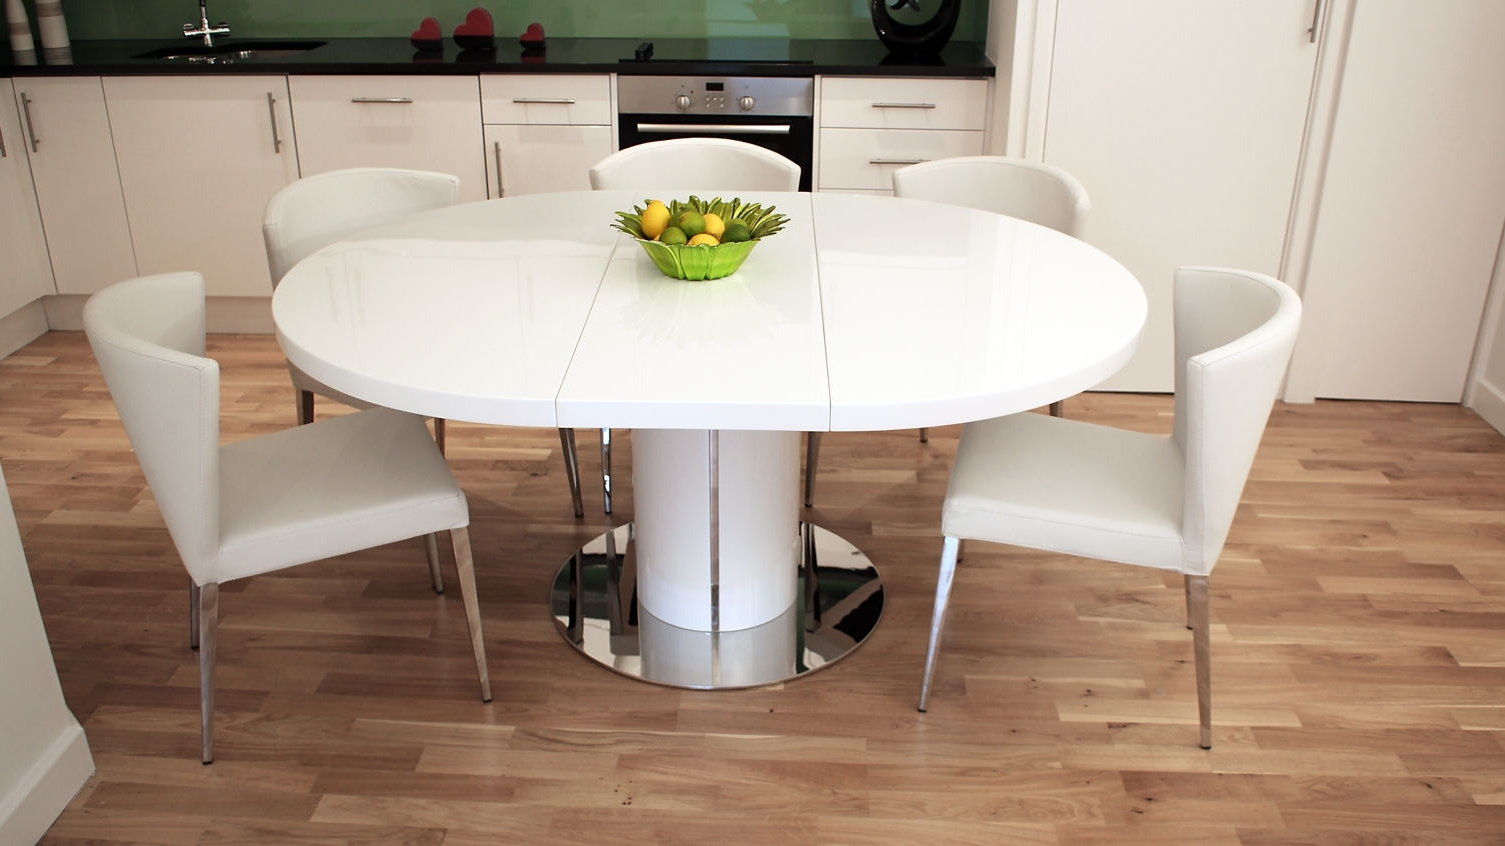 White Round Extendable Dining Tables Pertaining To Most Up To Date Diy Painting White Round Dining Table — The Home Redesign (View 3 of 25)